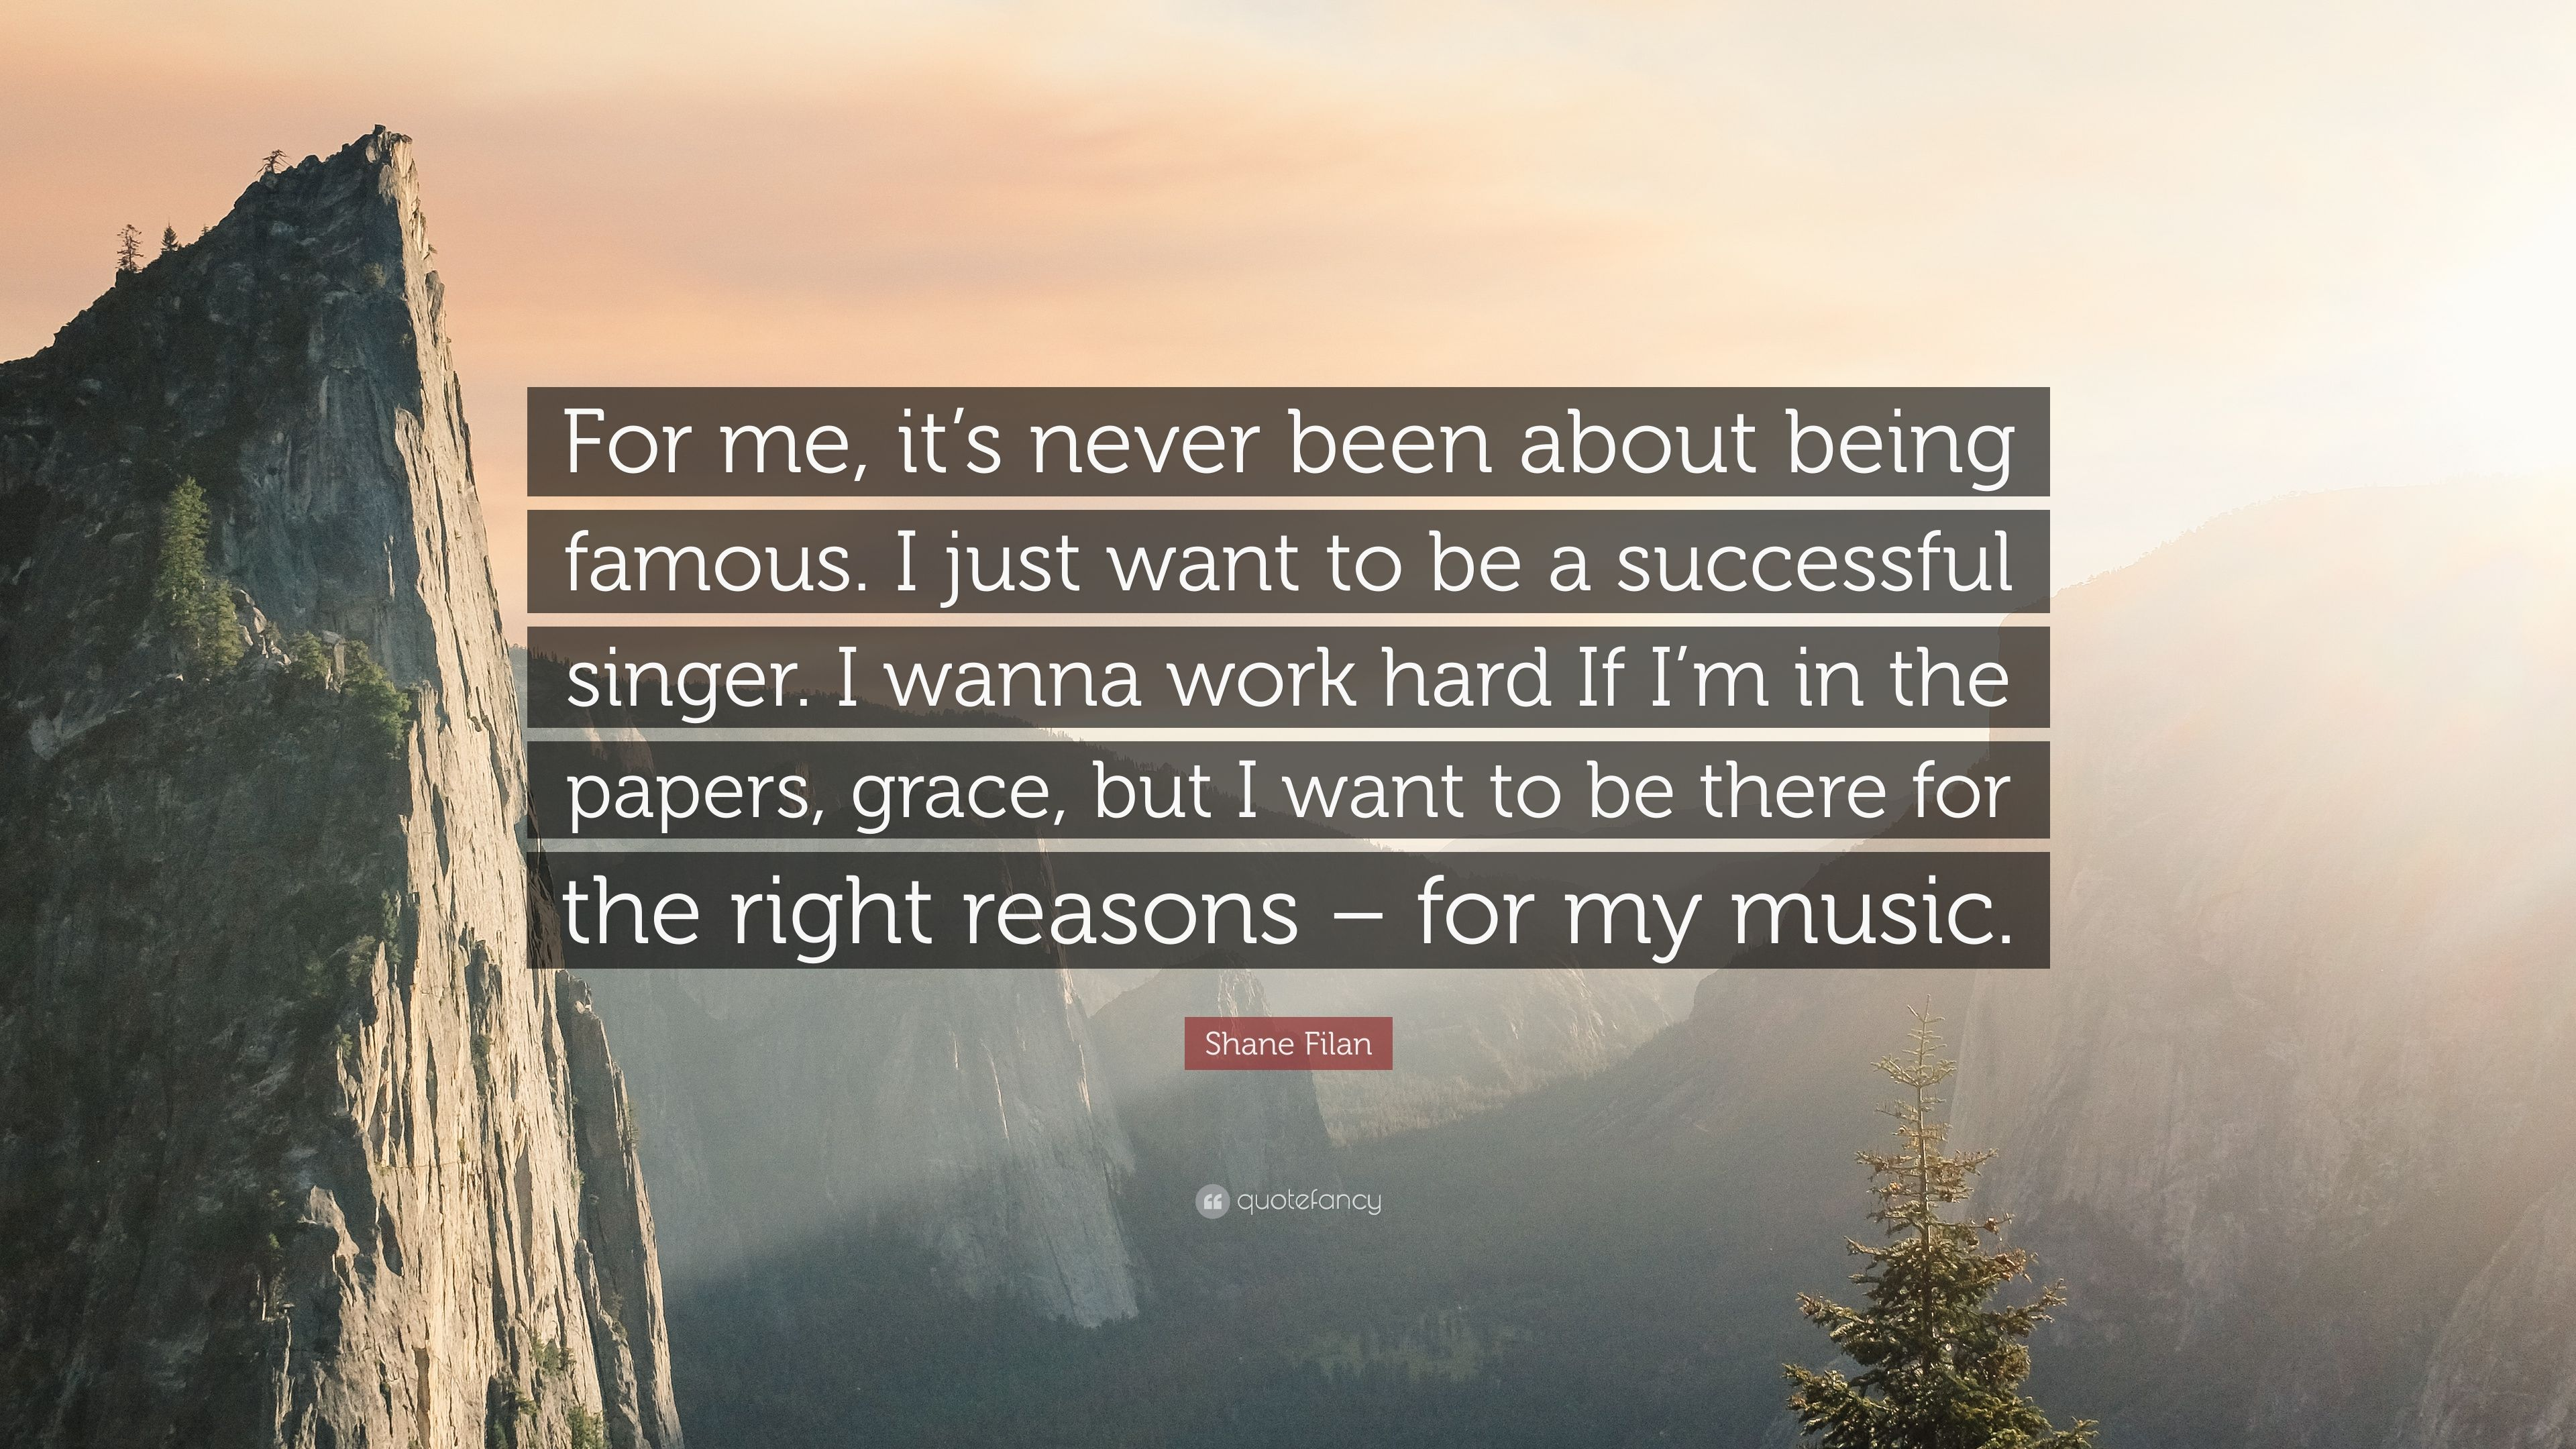 I want to be singer essay